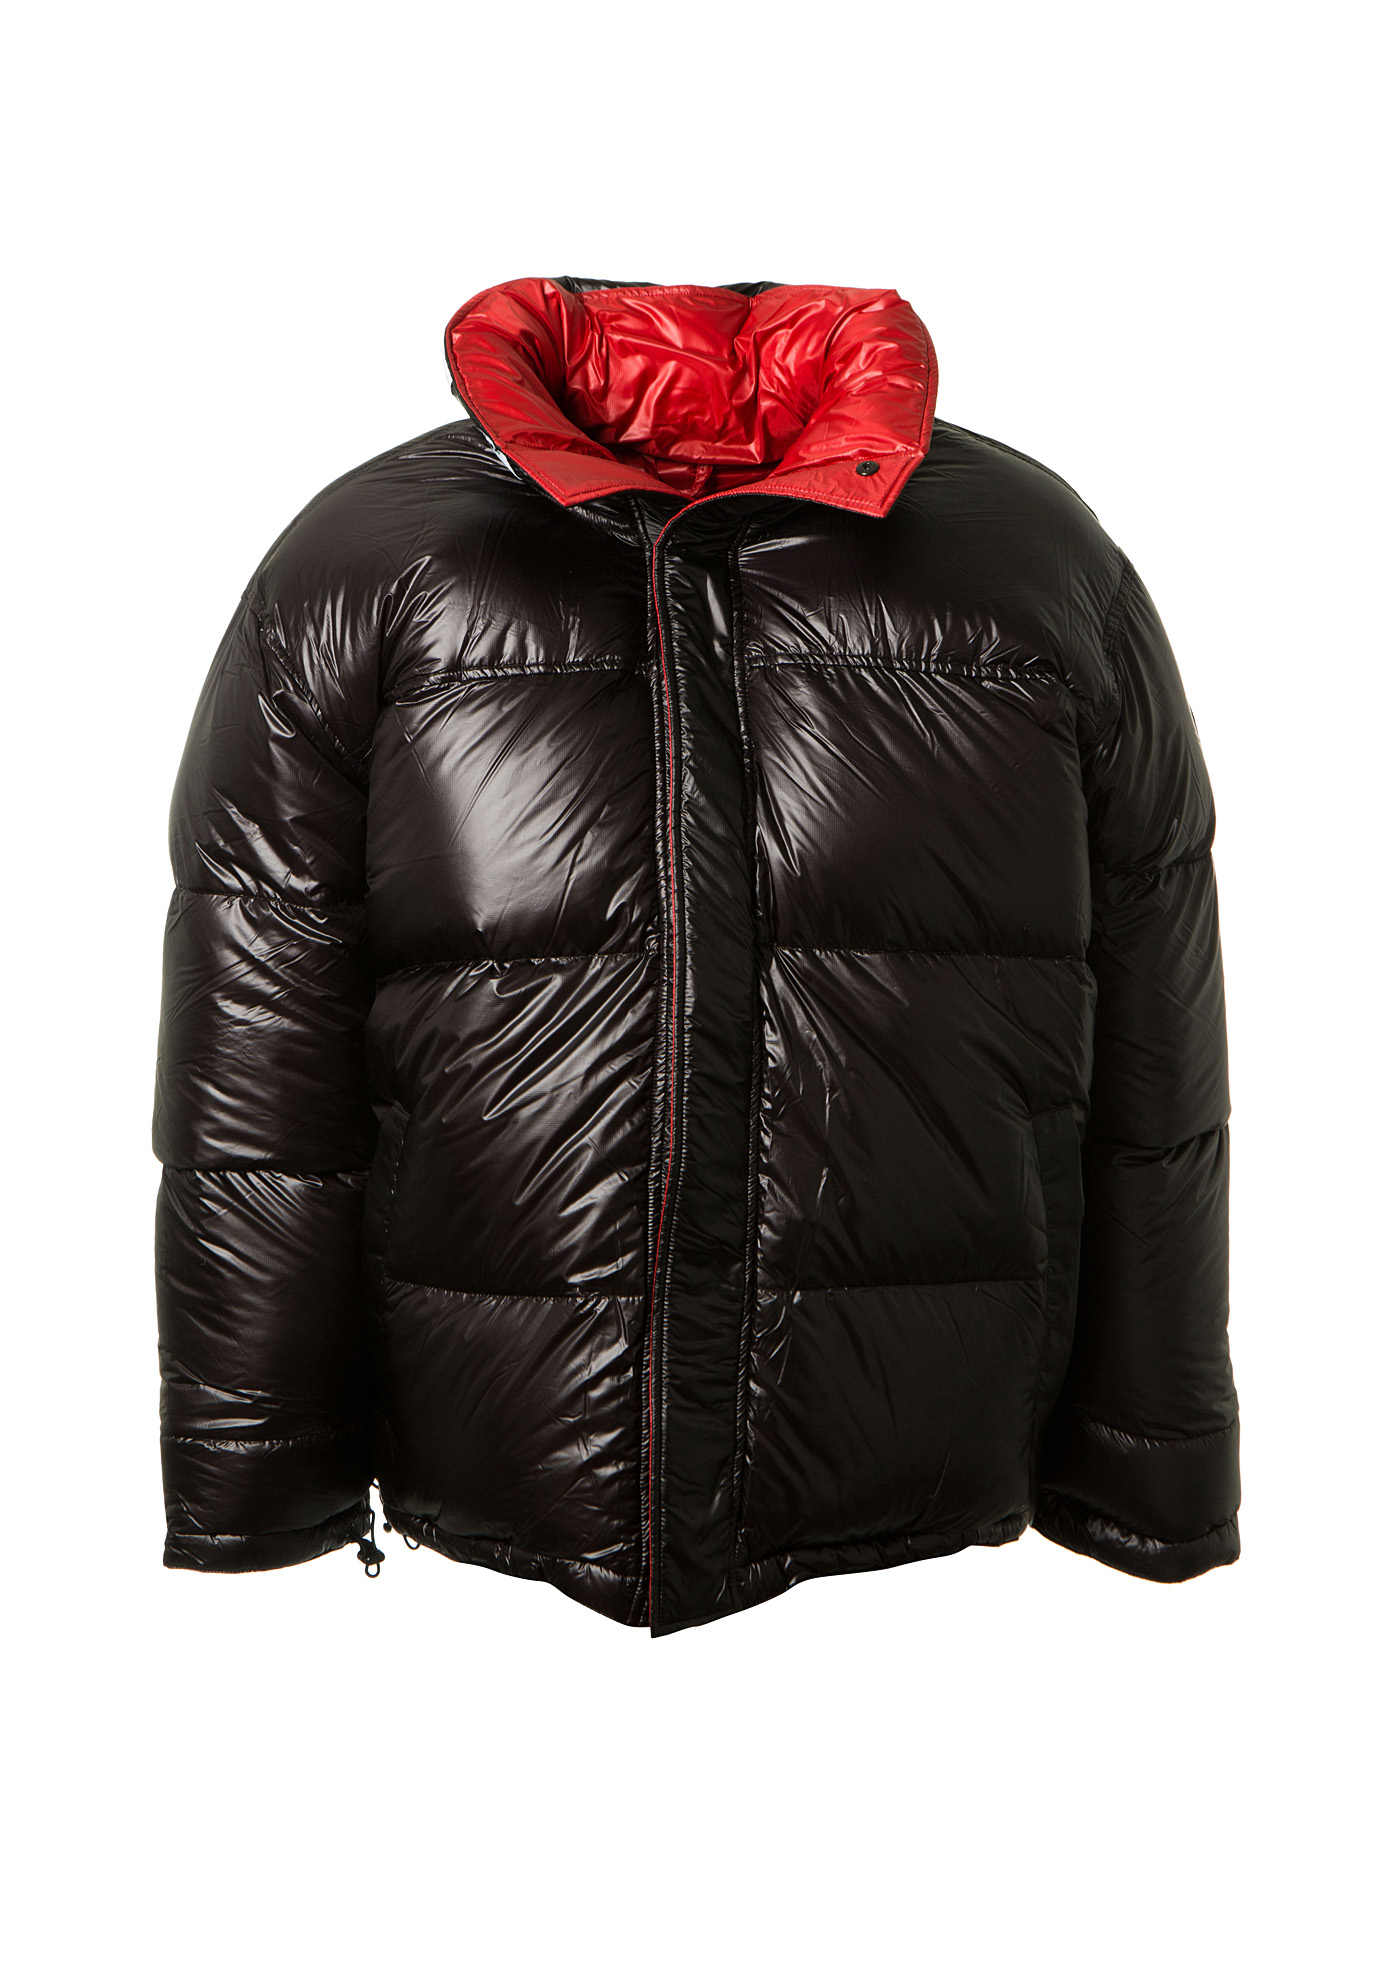 VETEMENTS X Canada Goose Black And Red Reversible Down Jacket